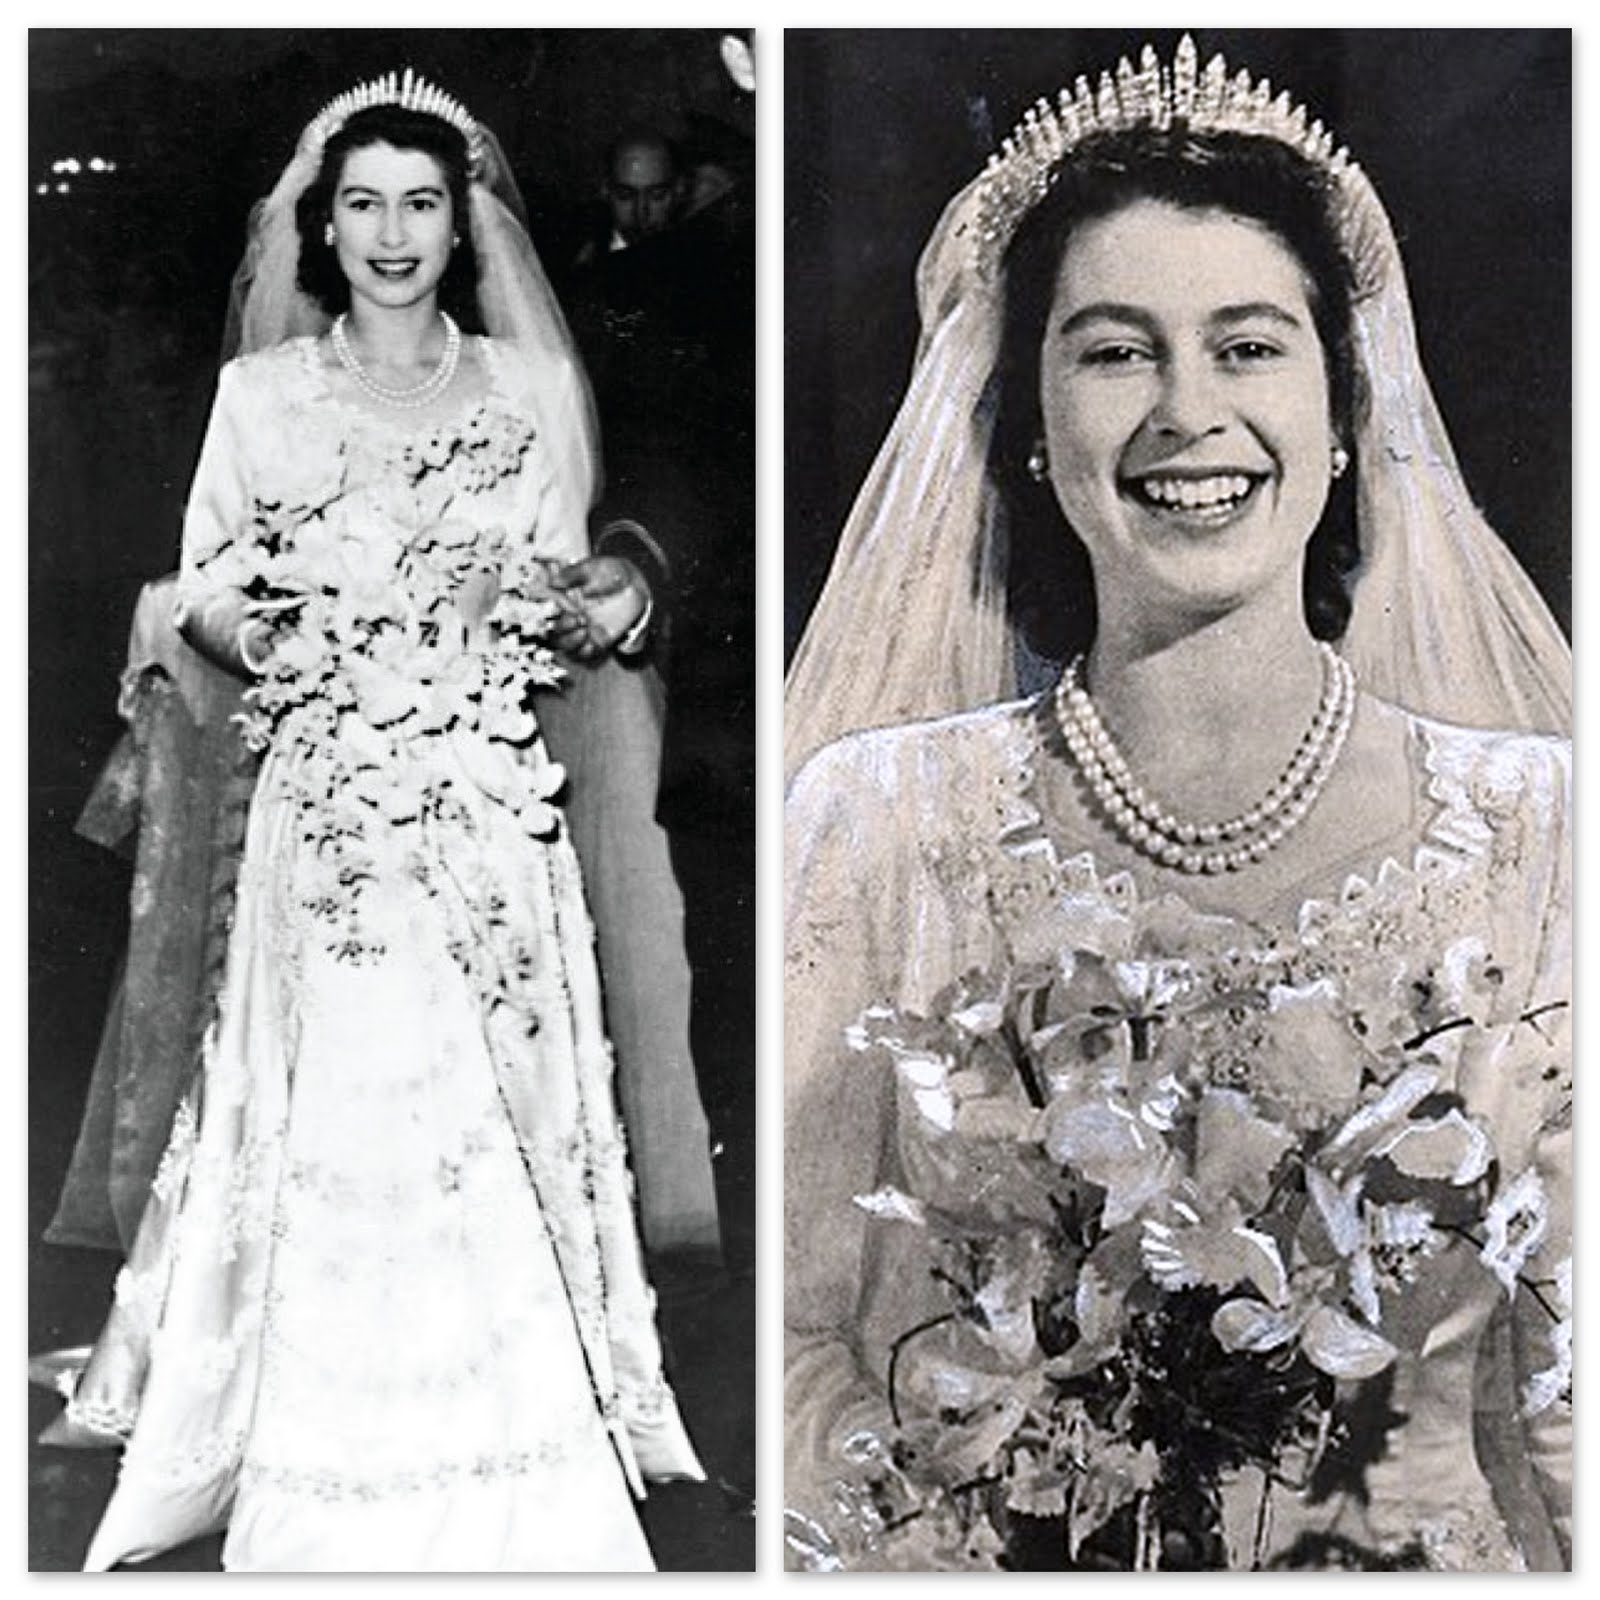 http://1.bp.blogspot.com/-b4r8vGm51Qc/UDc6zCCcUII/AAAAAAAAAKU/_aweeXd_mj8/s1600/Queen-Elizabeth-II-wedding-dress.jpg